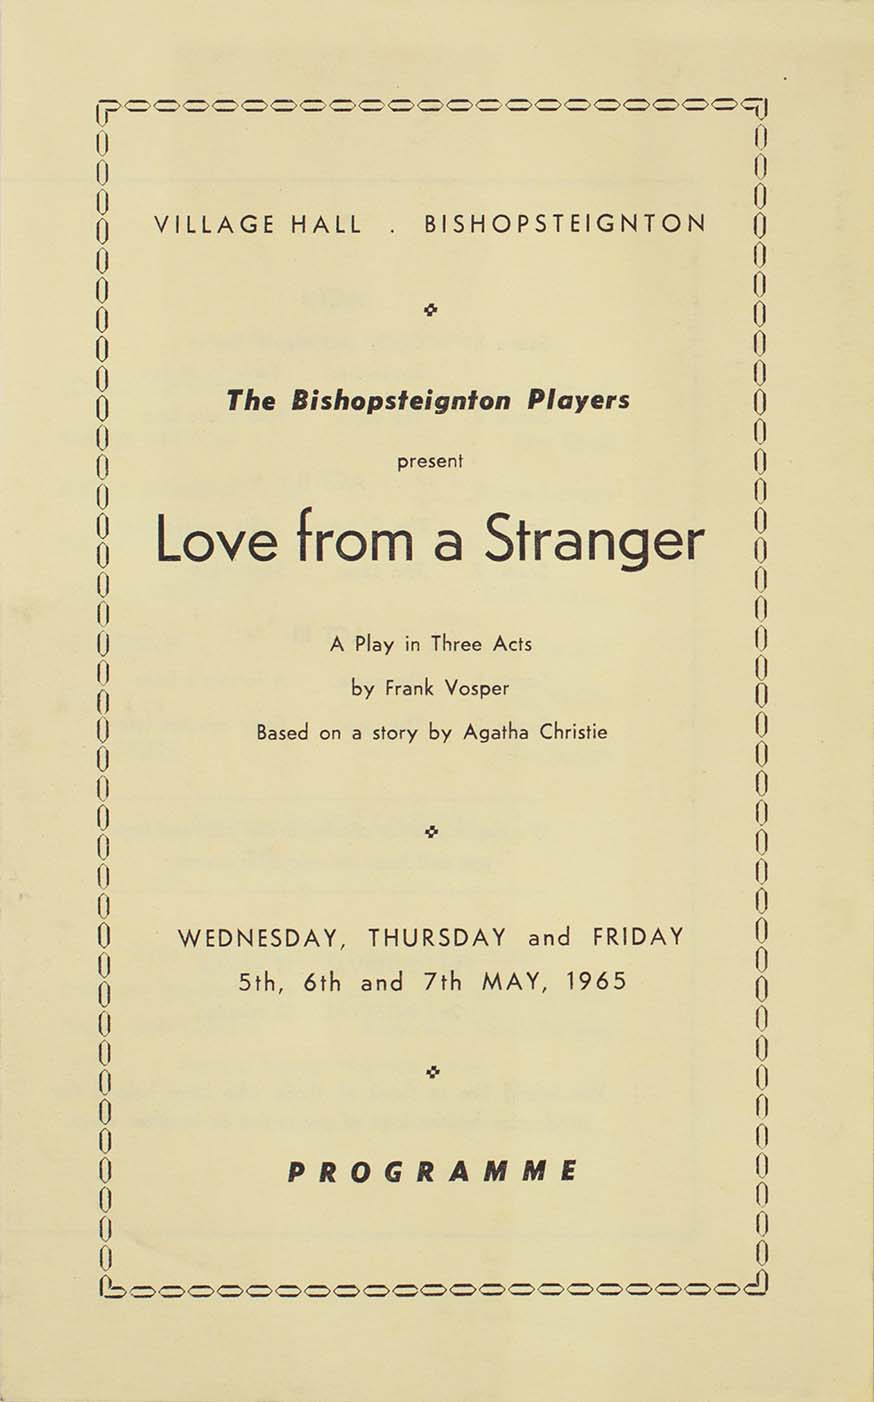 Programme for the play 'Love from a Stranger' presented by the Bishopsteignton Players front